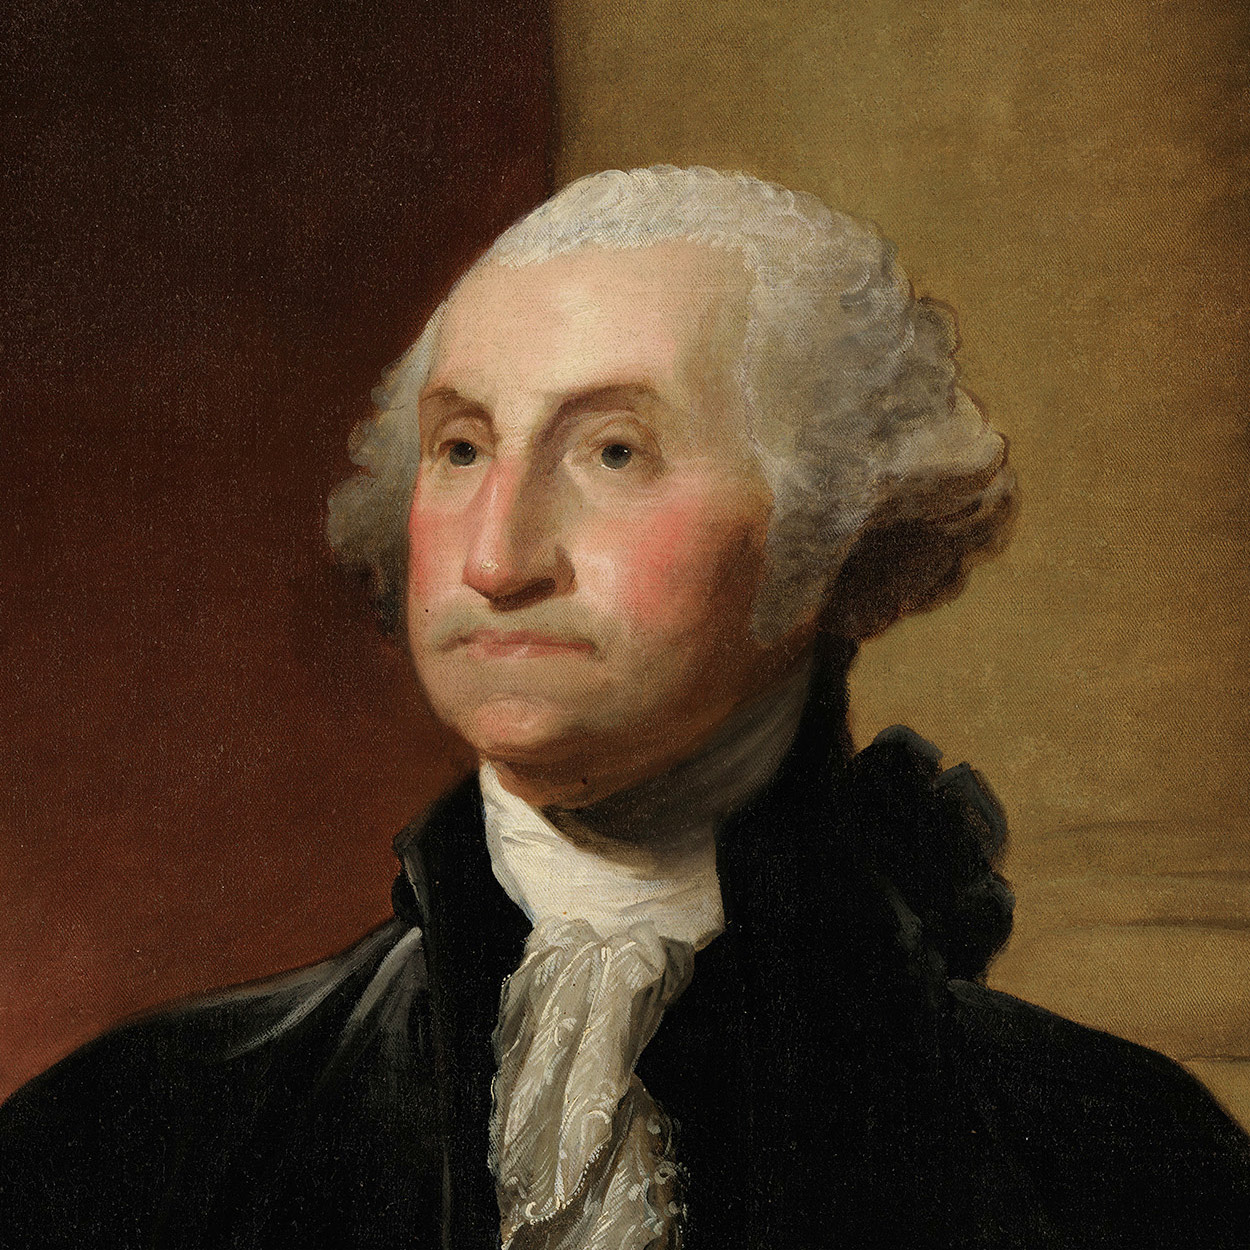 Portrait of George Washington, the 1st President of the United States